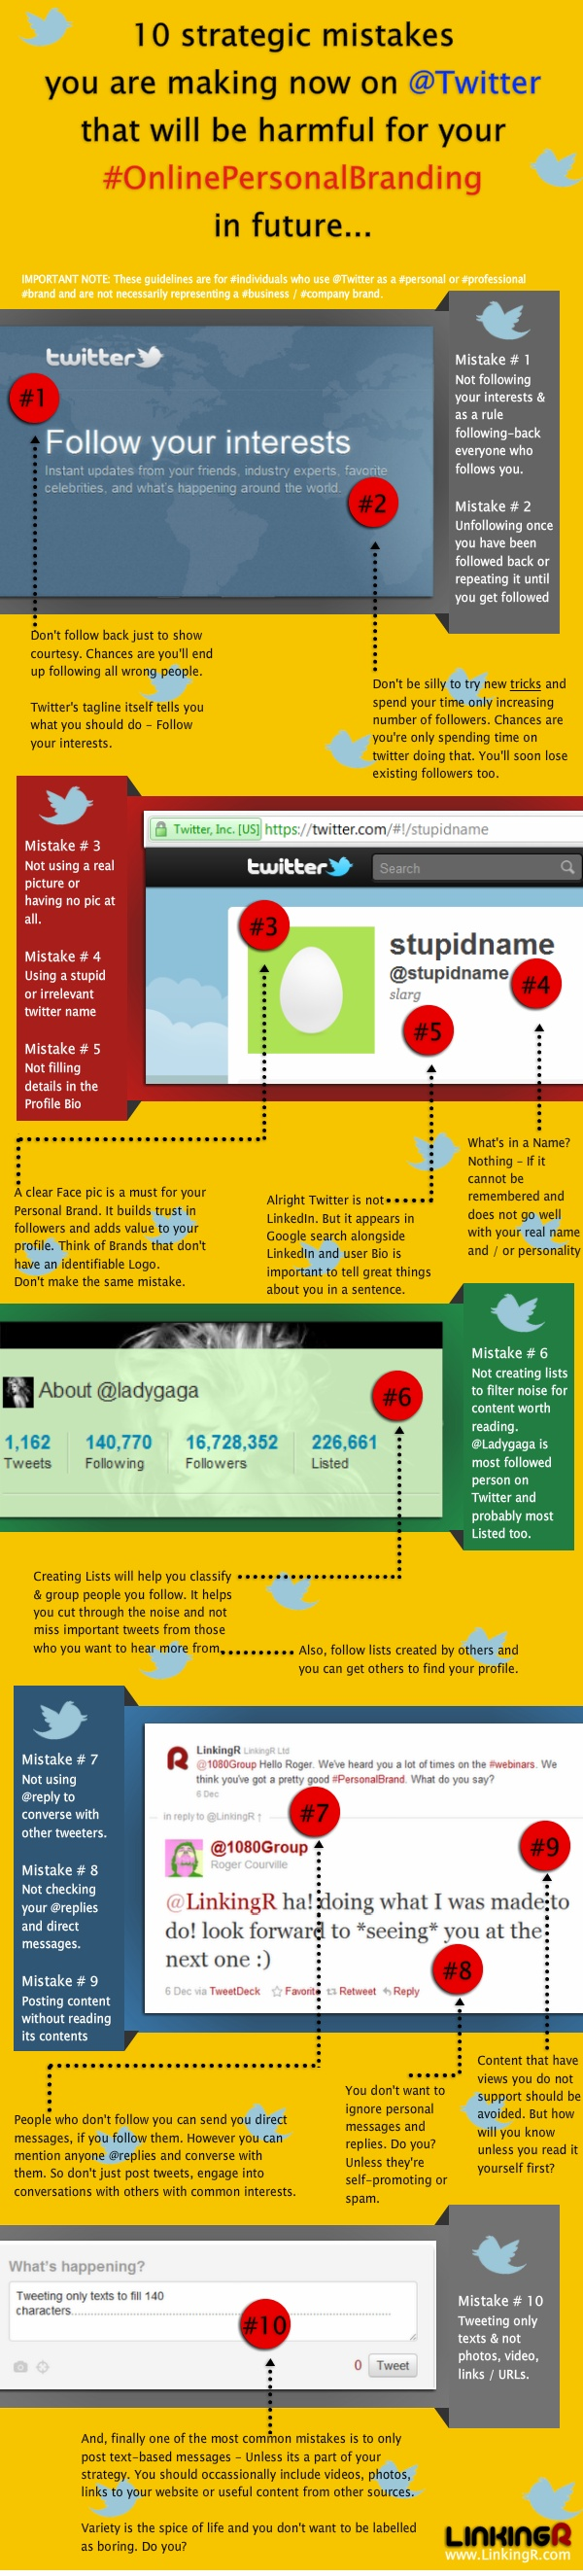 10 Strategic Twitter Mistakes